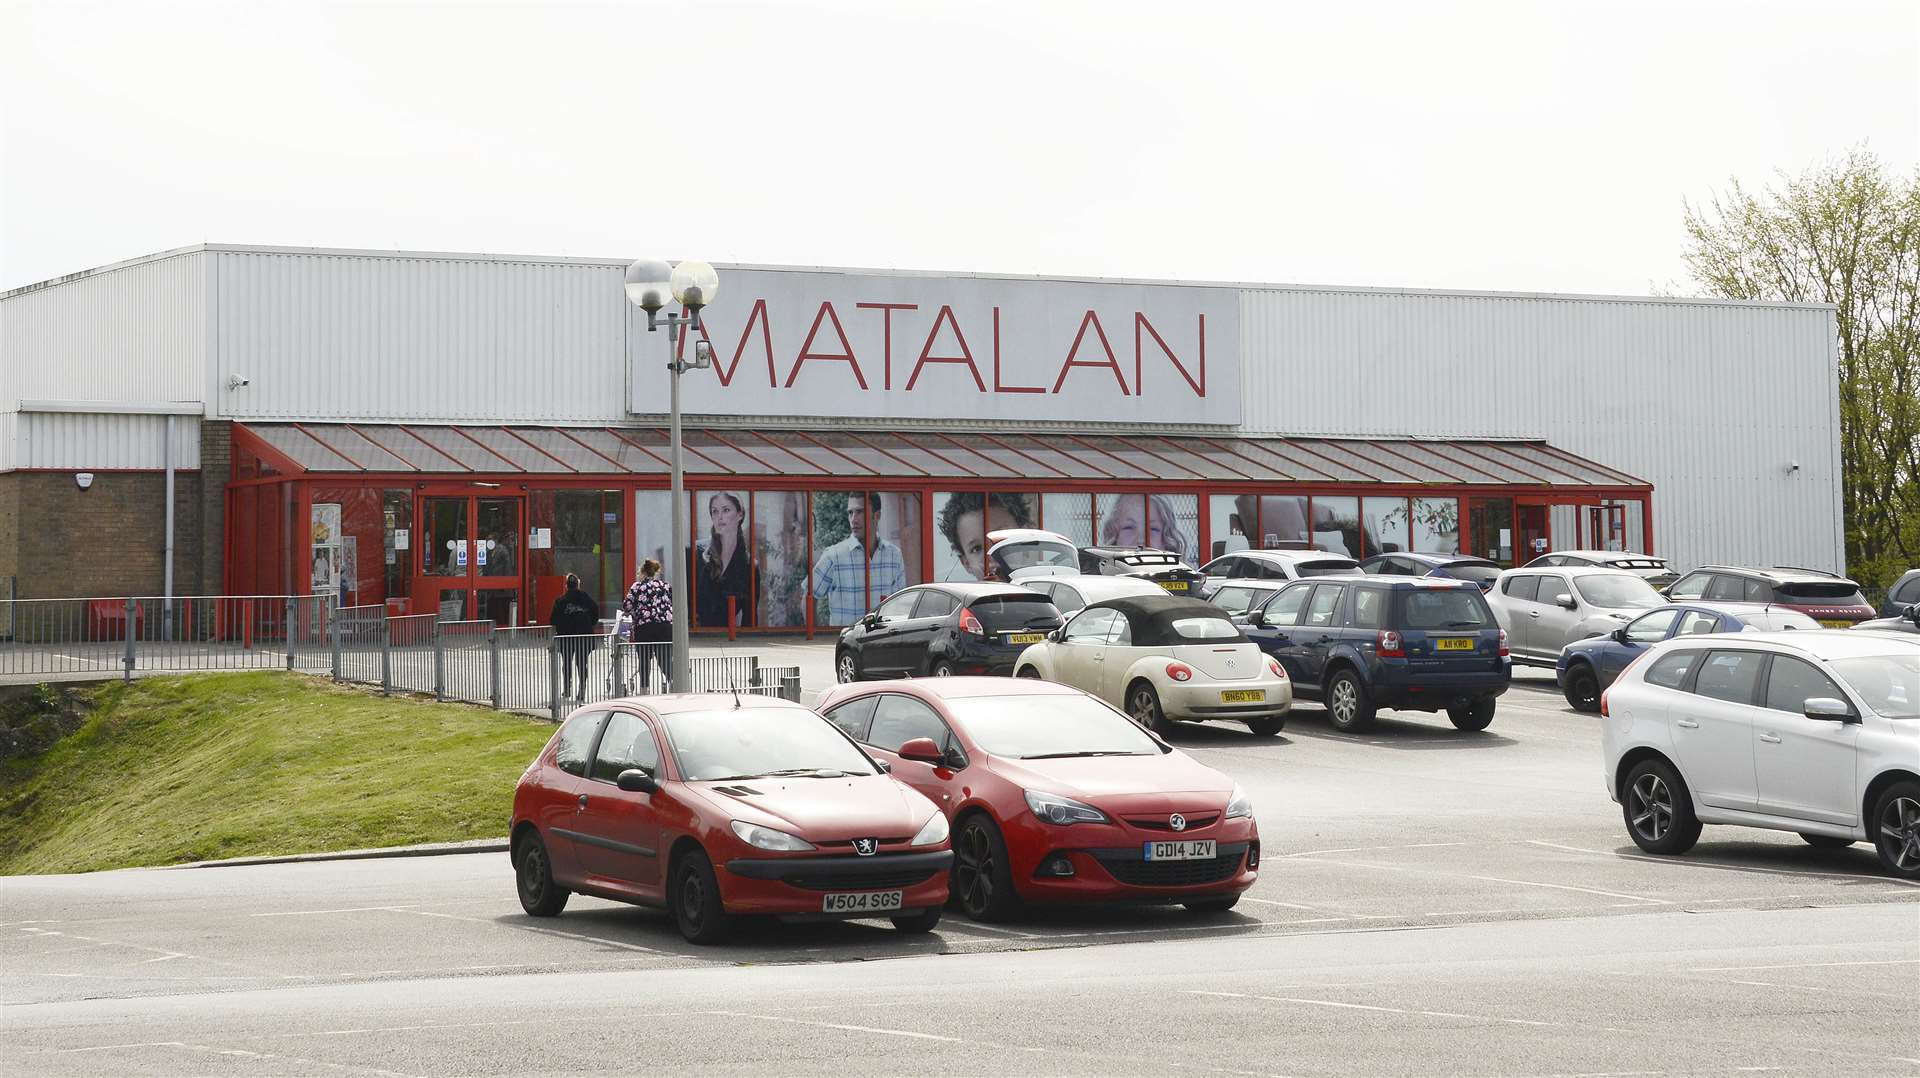 The Matalan store in Brookfield Road was put on the market in February